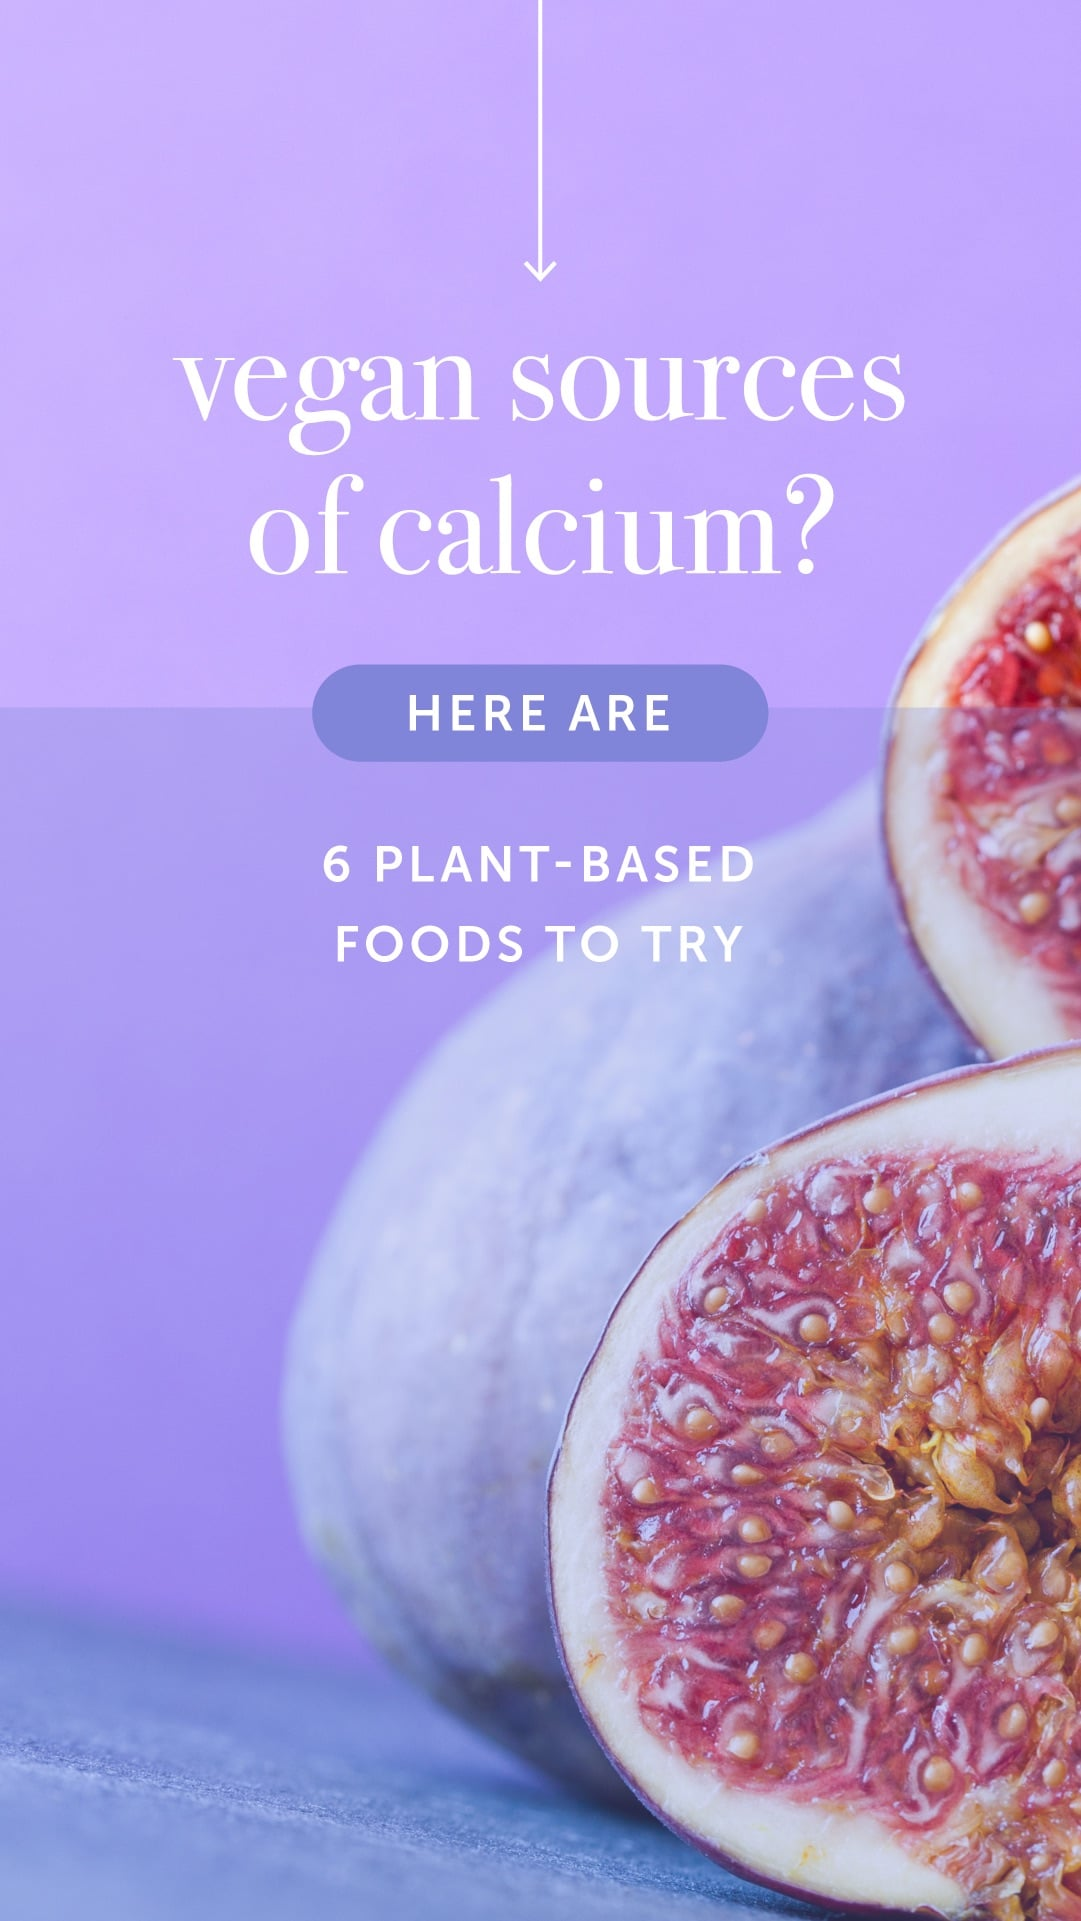 Vegan Sources of Calcium? Here Are 6 Plant-Based Foods to Try